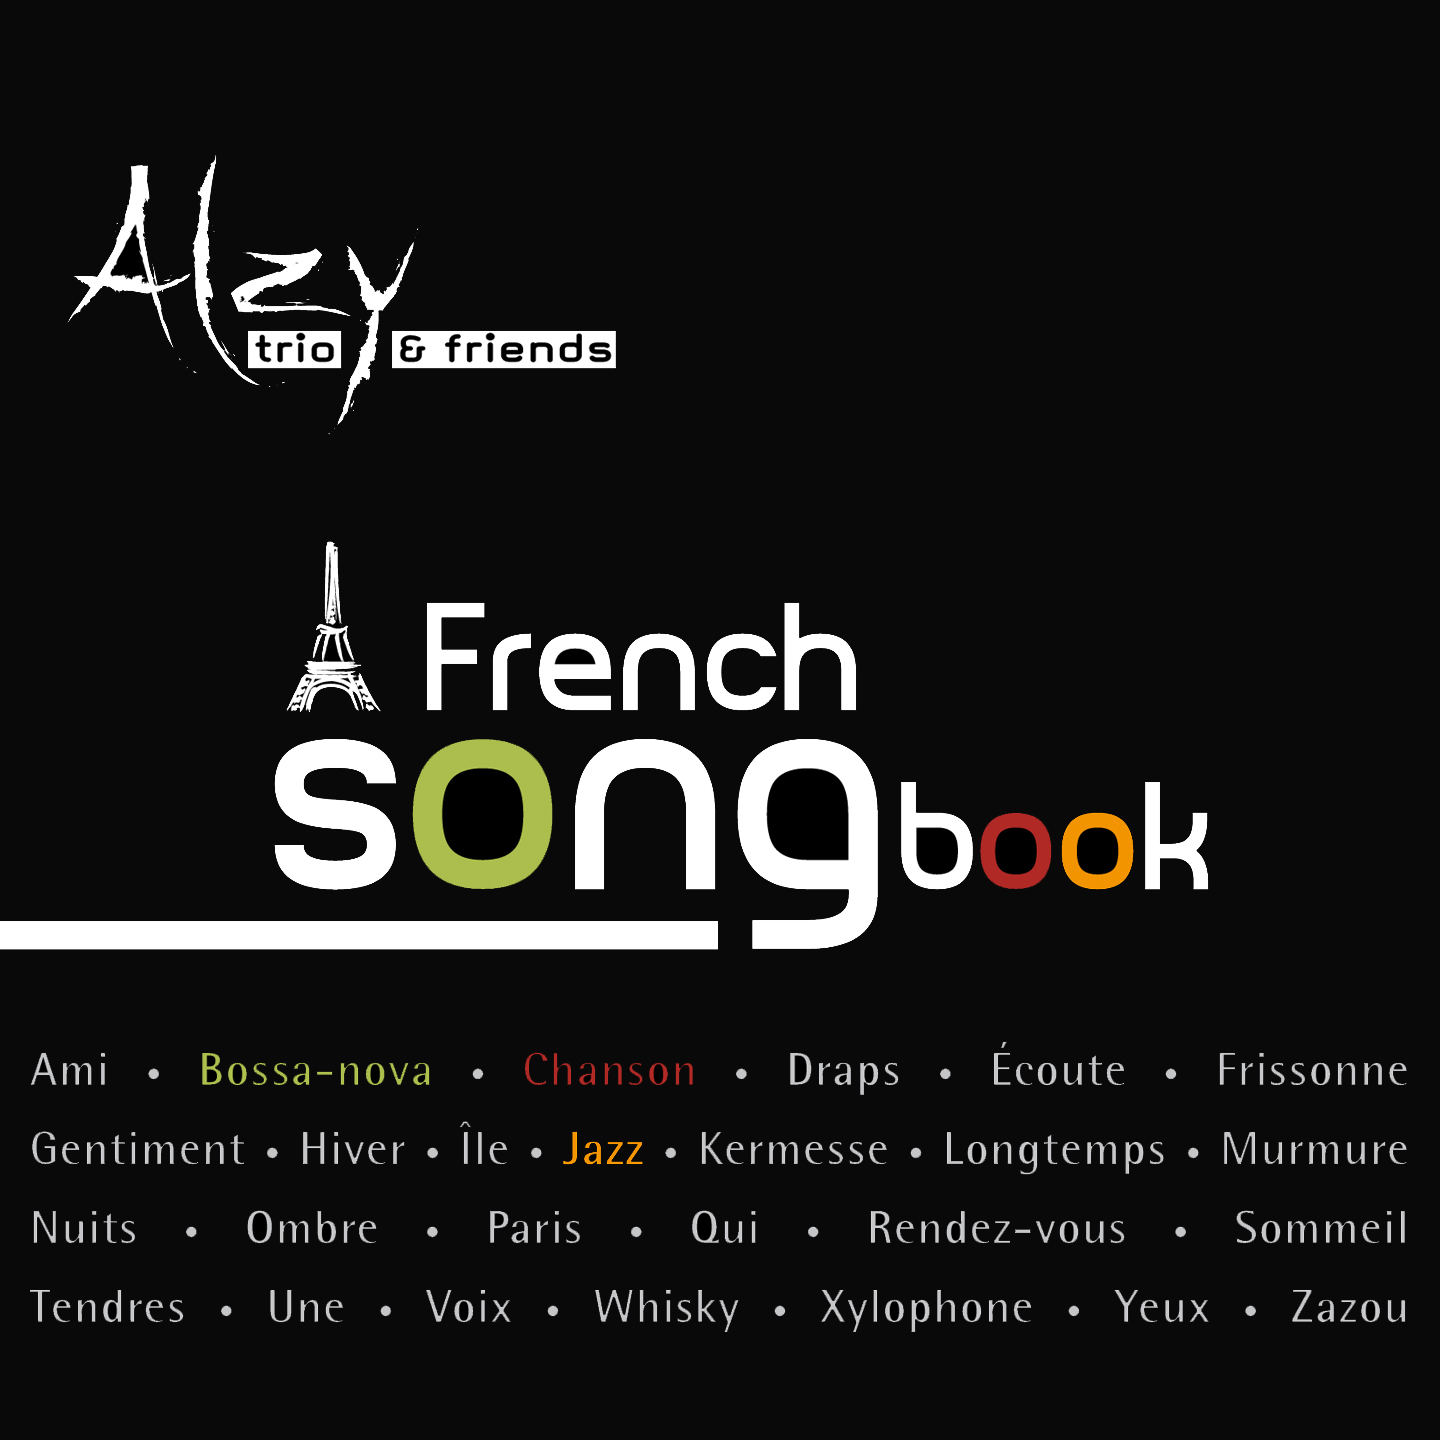 A French songbook